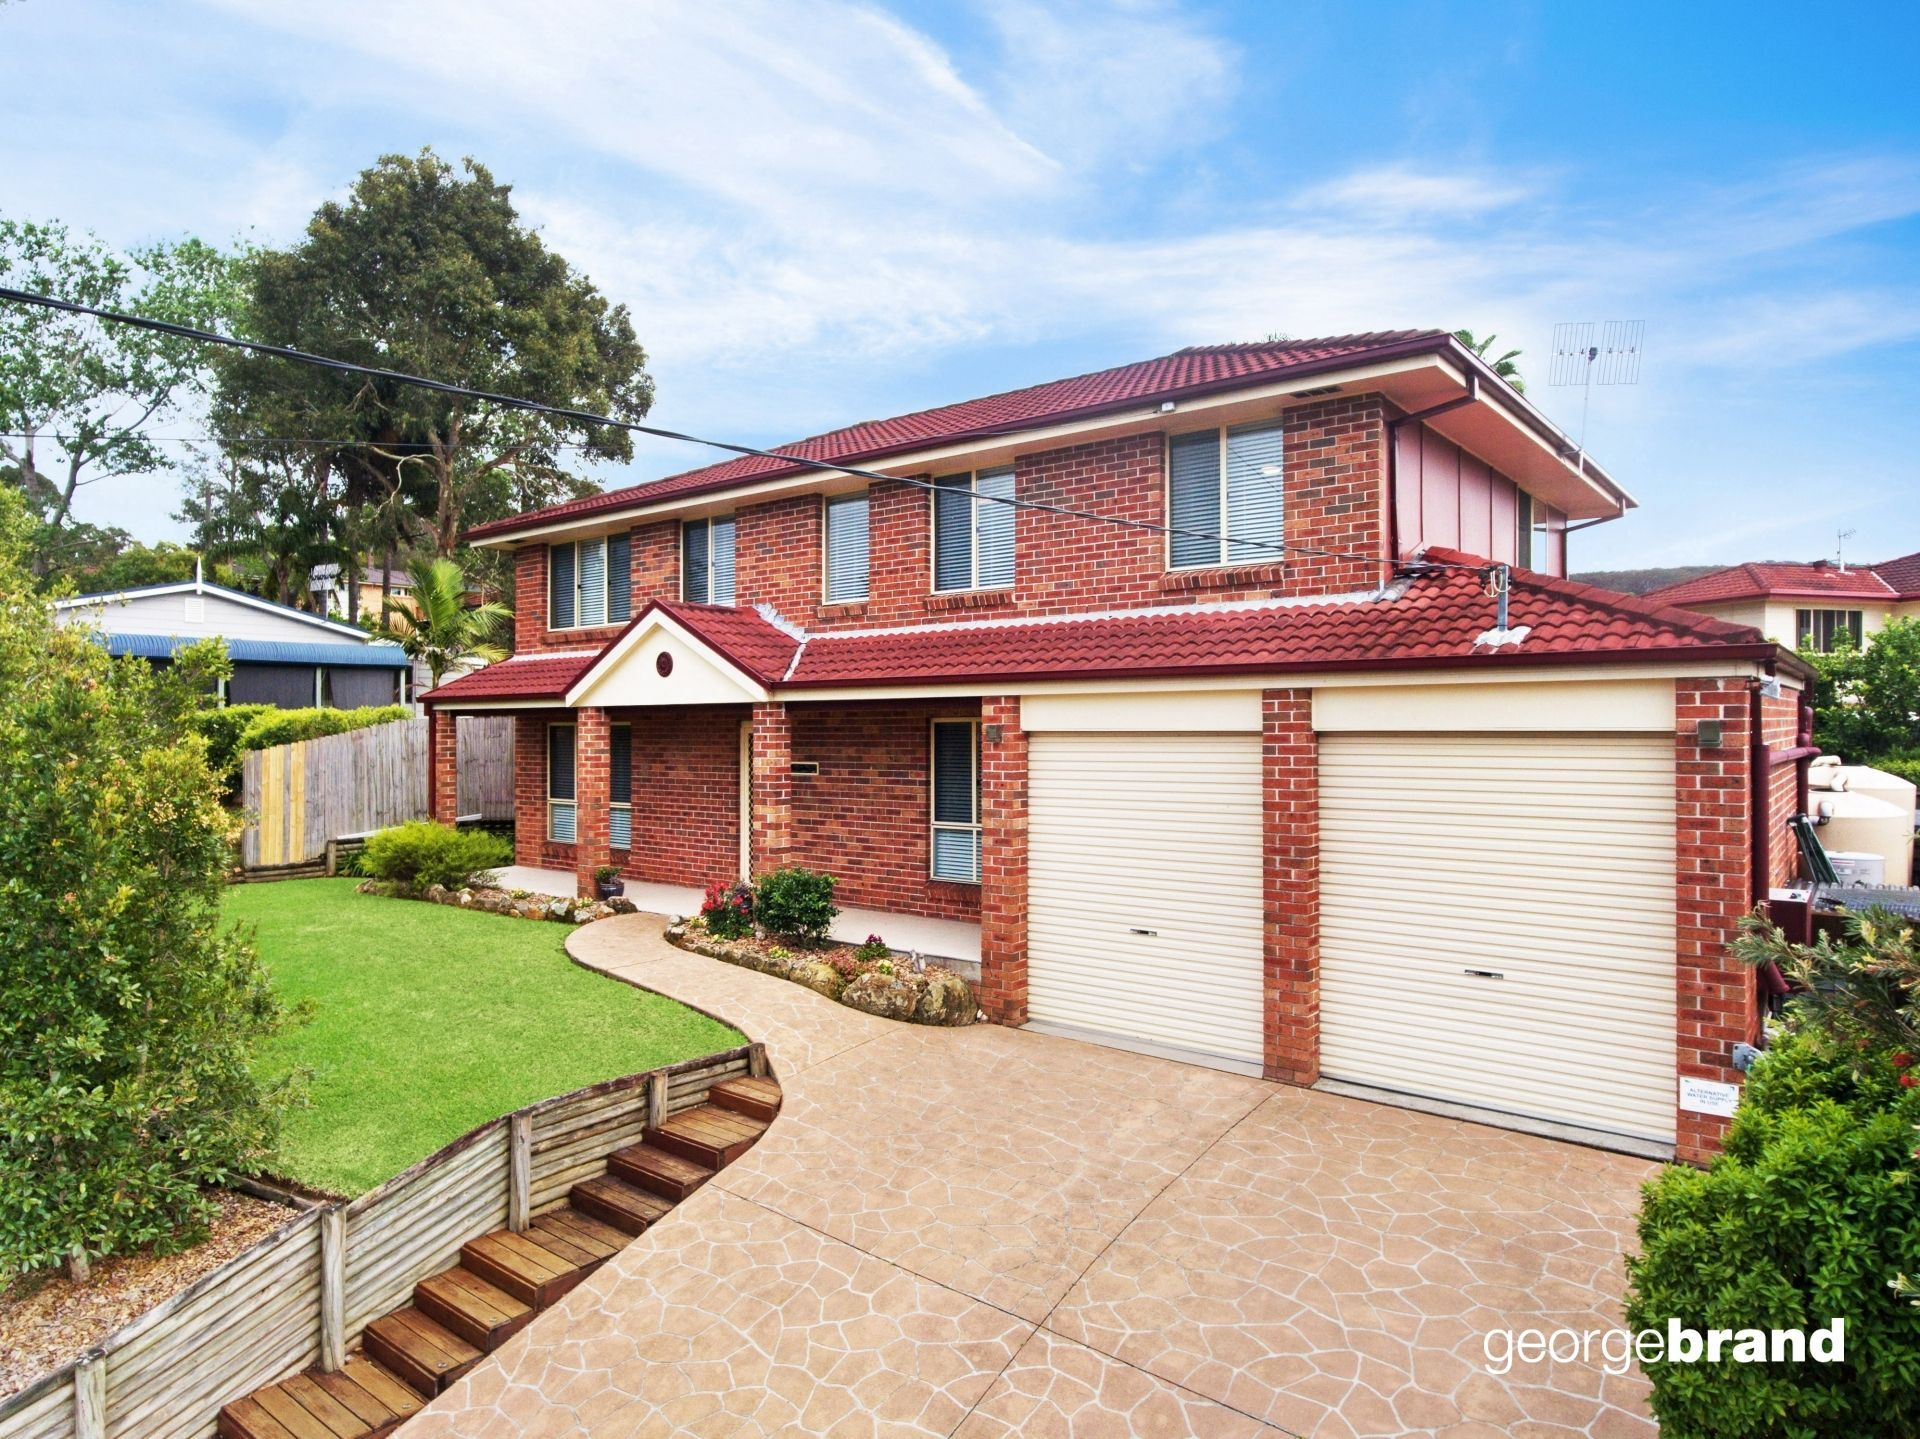 Kincumber Real Estate: SPACIOUS FAMILY HOME WITH MULTIPLE ENTERTAINING AREAS